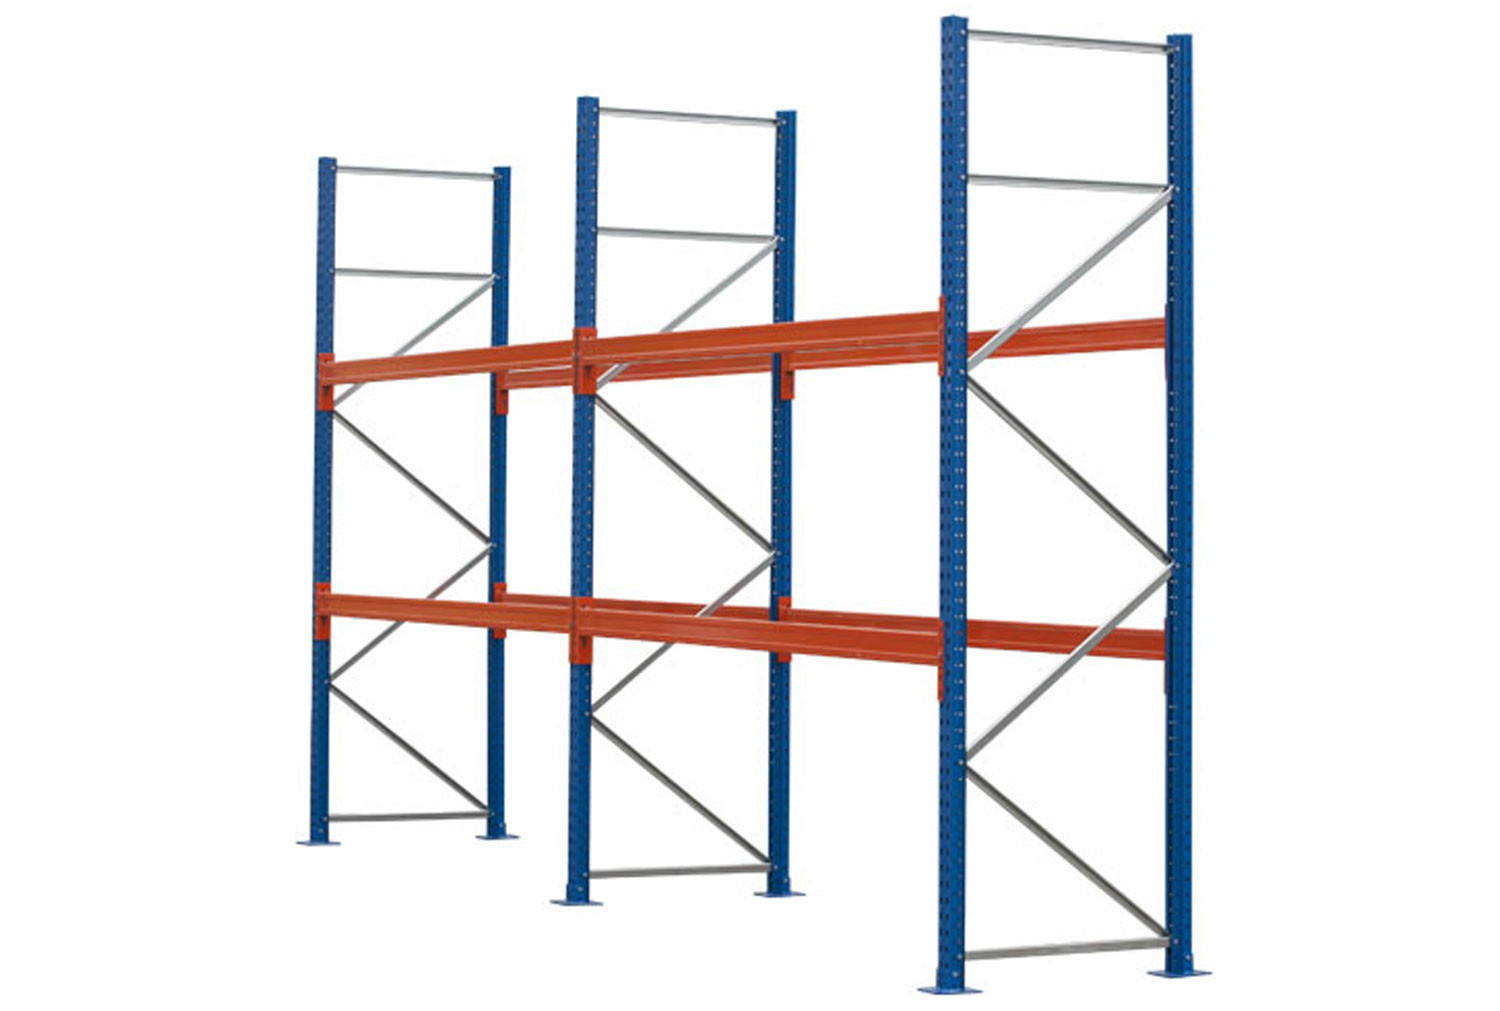 Pallet Racking Kit For 24 Pallets 5717wx4000h